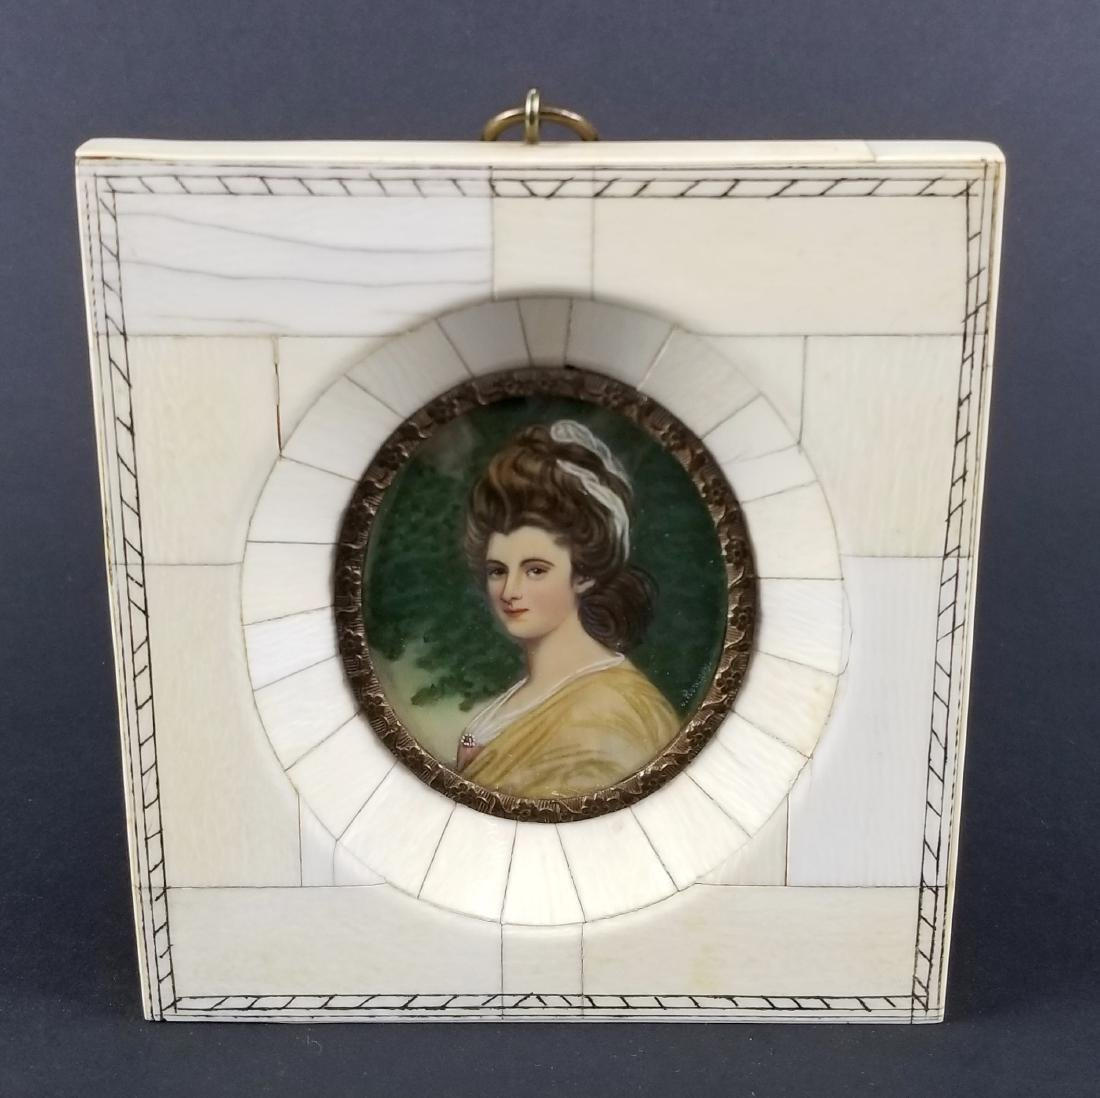 Pair of Late 19th C. Miniature Portraits in Frames, One - 4